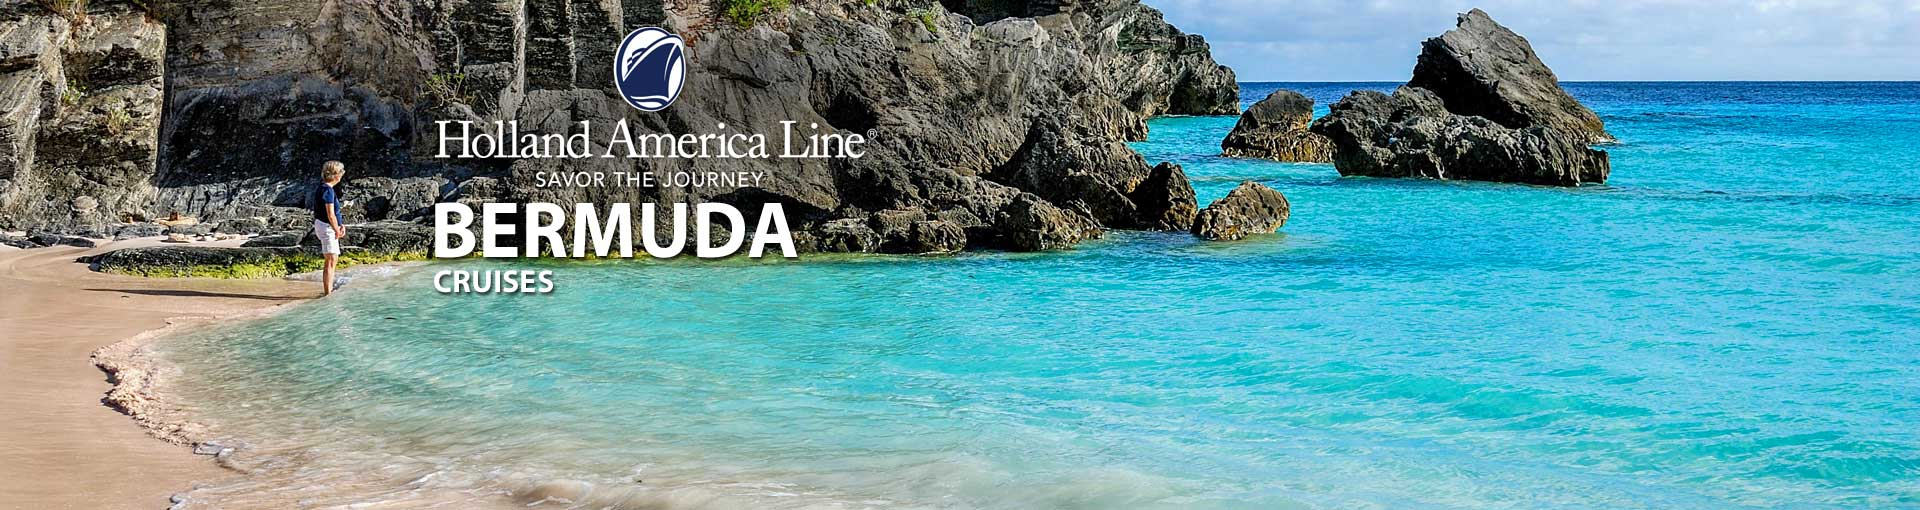 Holland America Bermuda Cruises